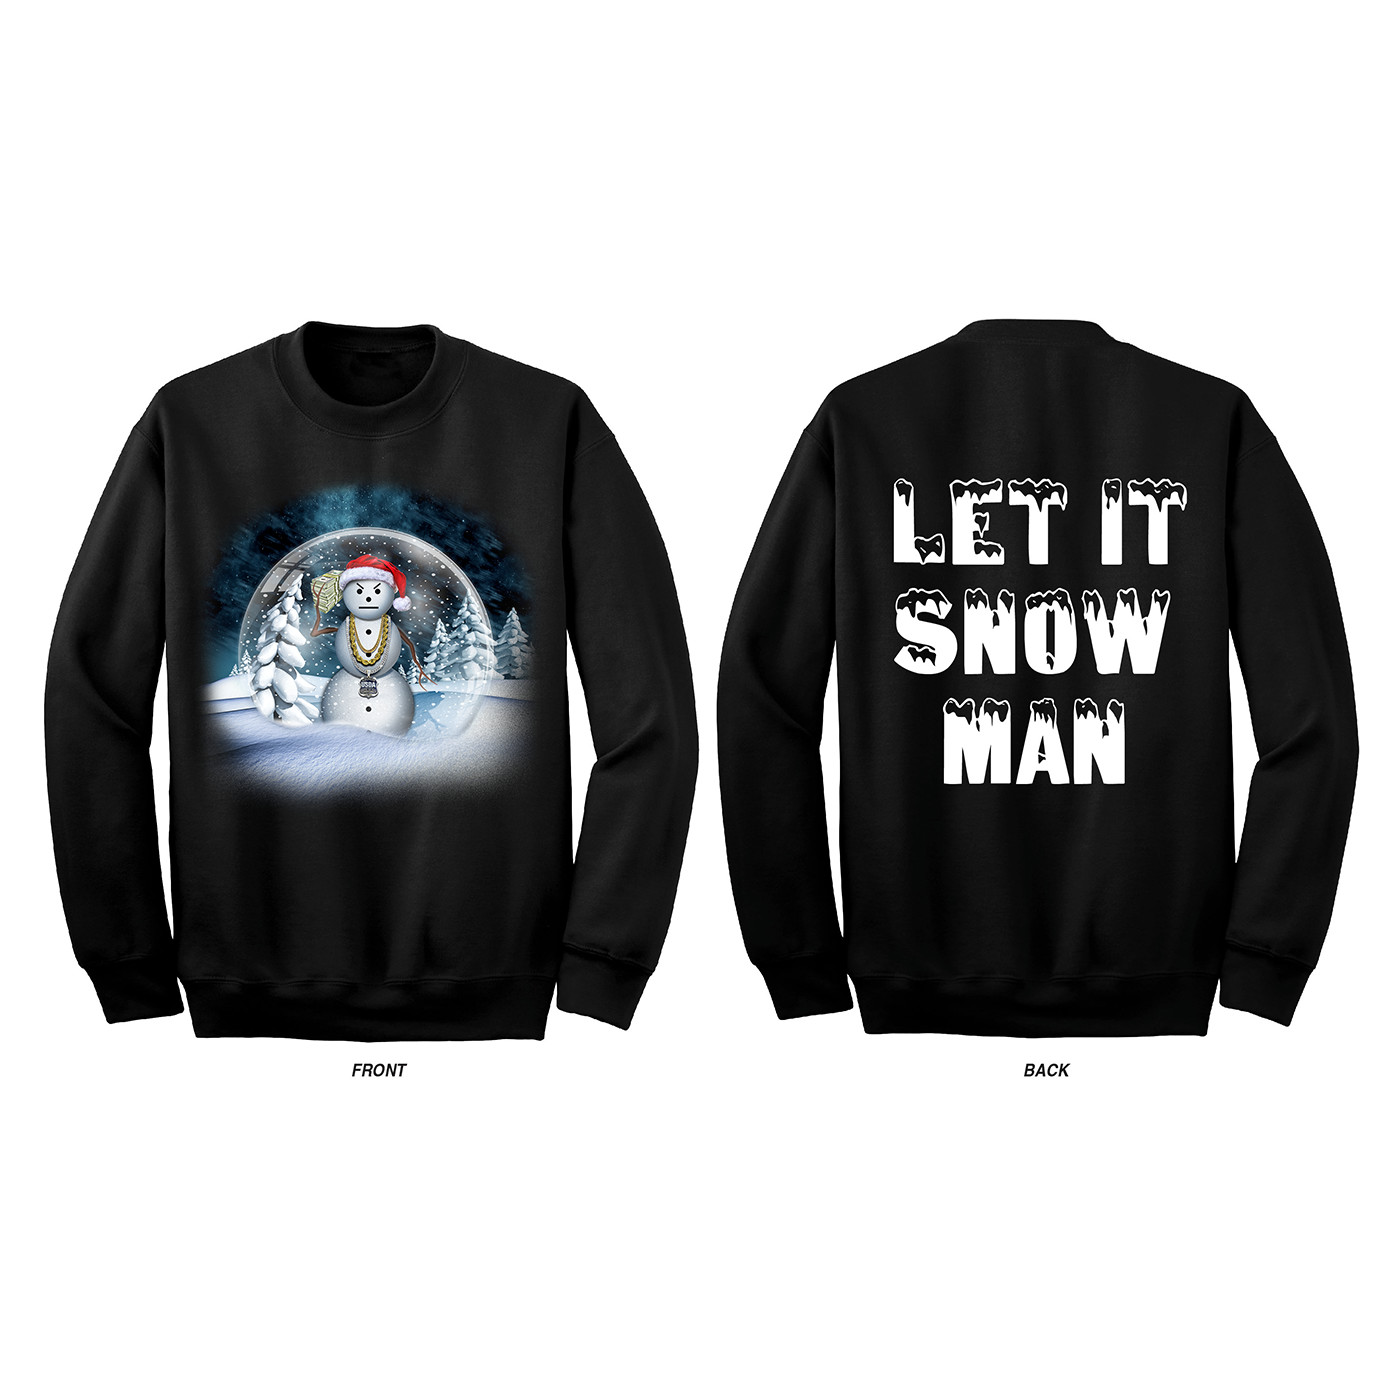 Roger kenerly ii jeezy christmas snow globe sweatshirt artstation